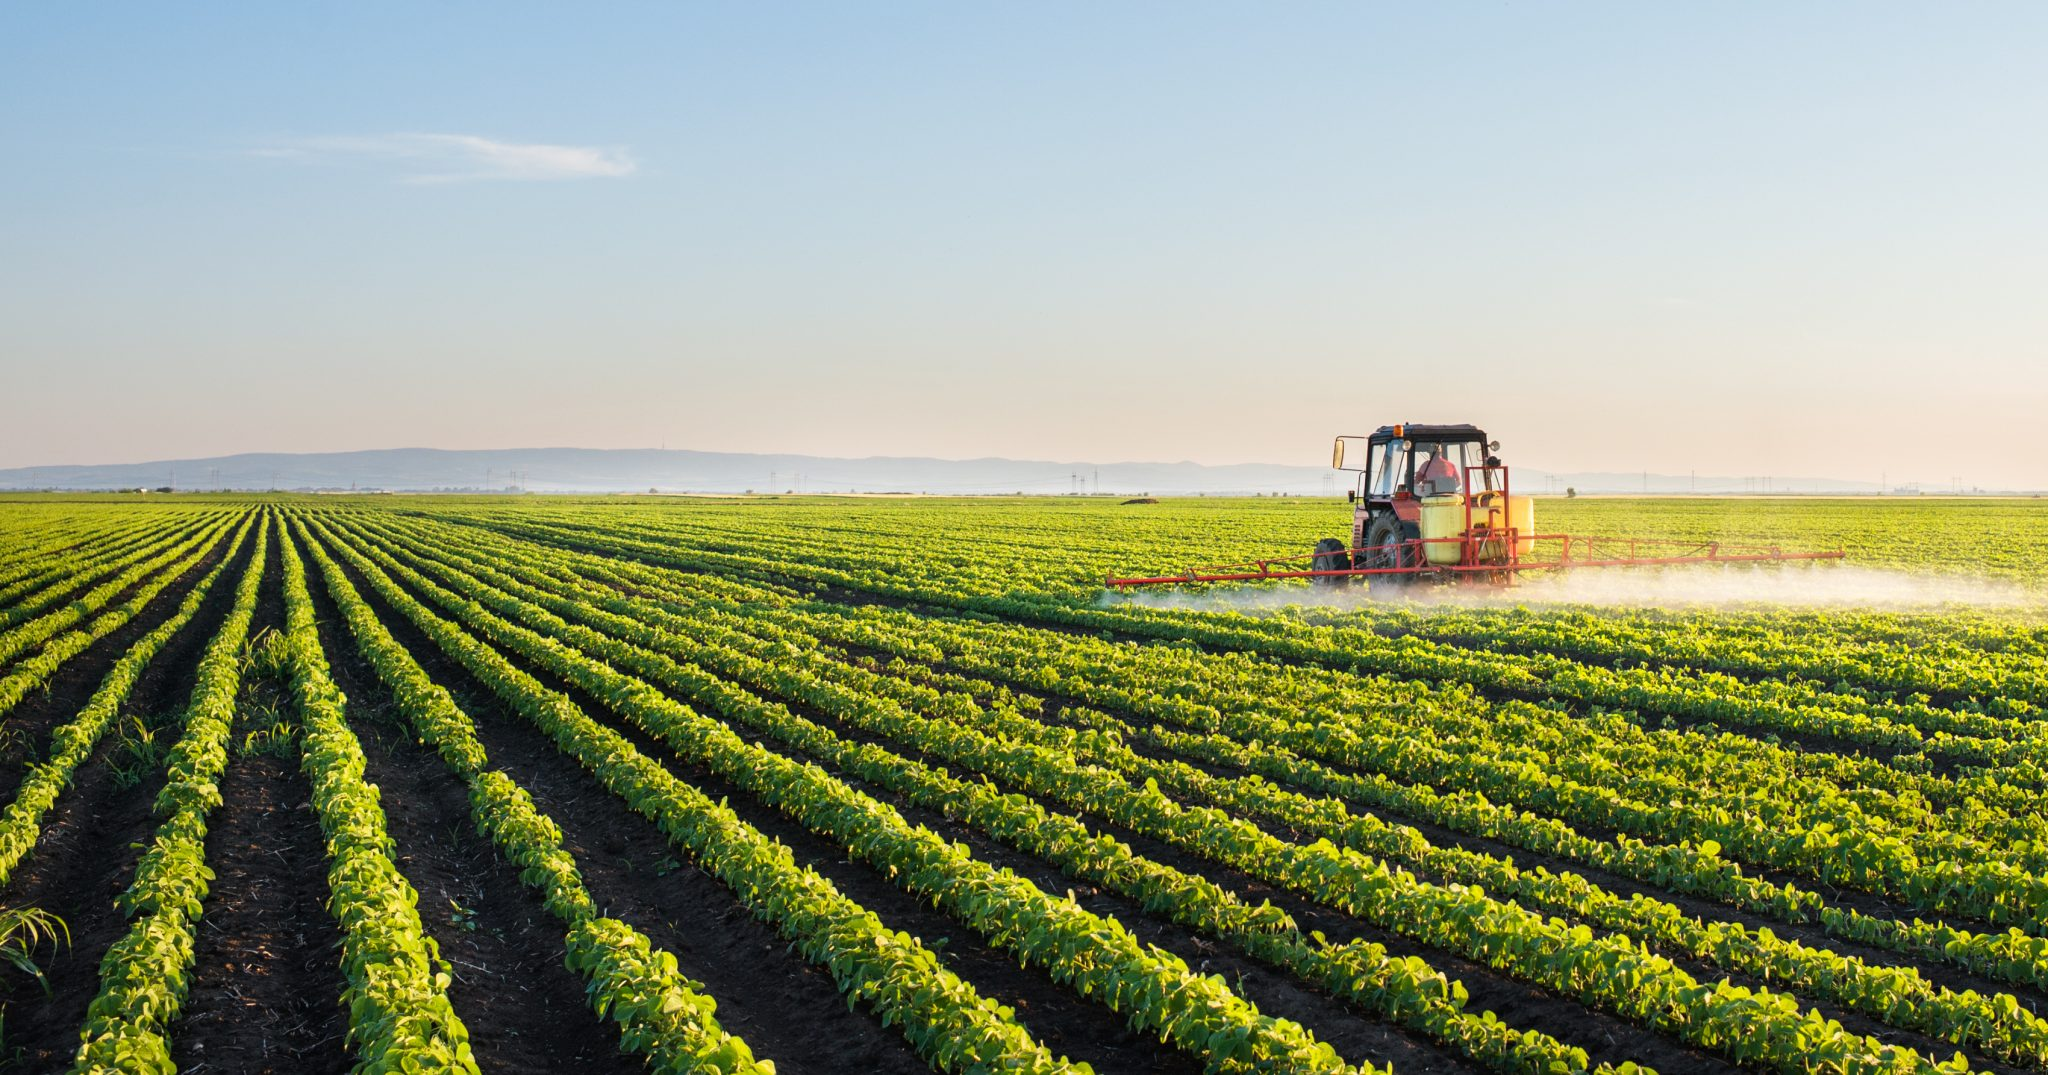 TARI to launch agriculture technology hub